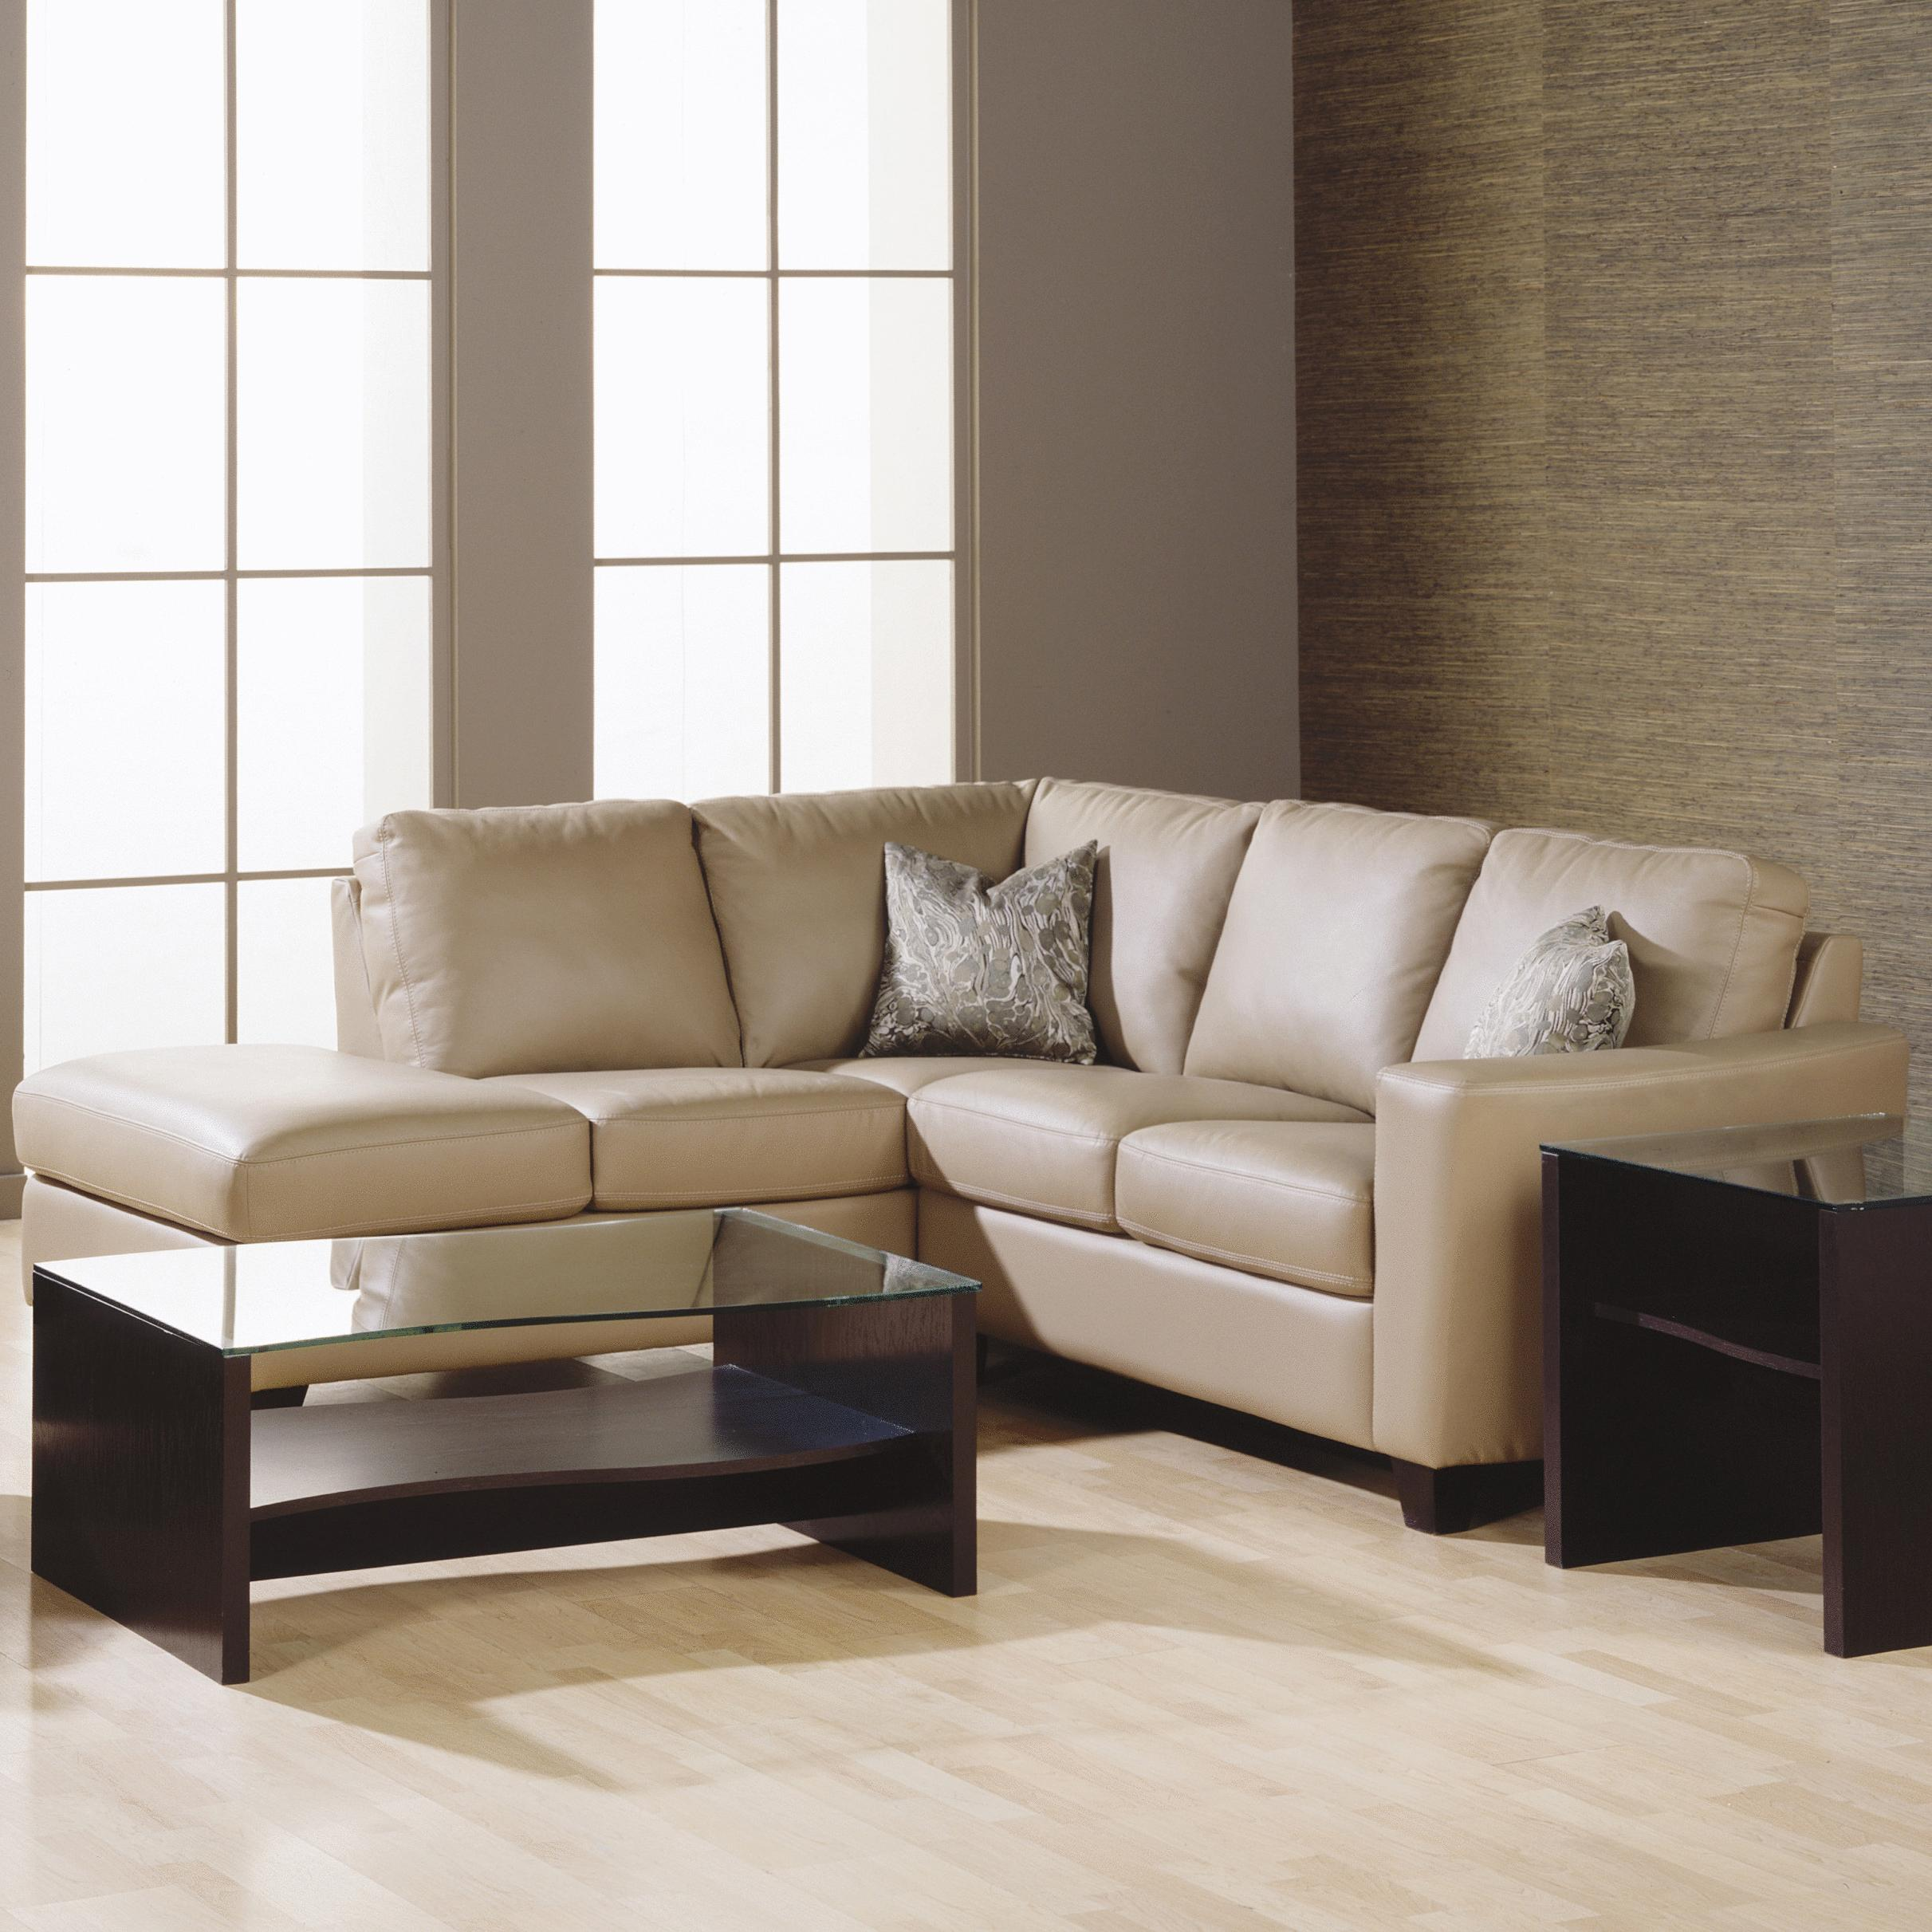 Palliser Leeds Contemporary 2-piece Sectional With Corner